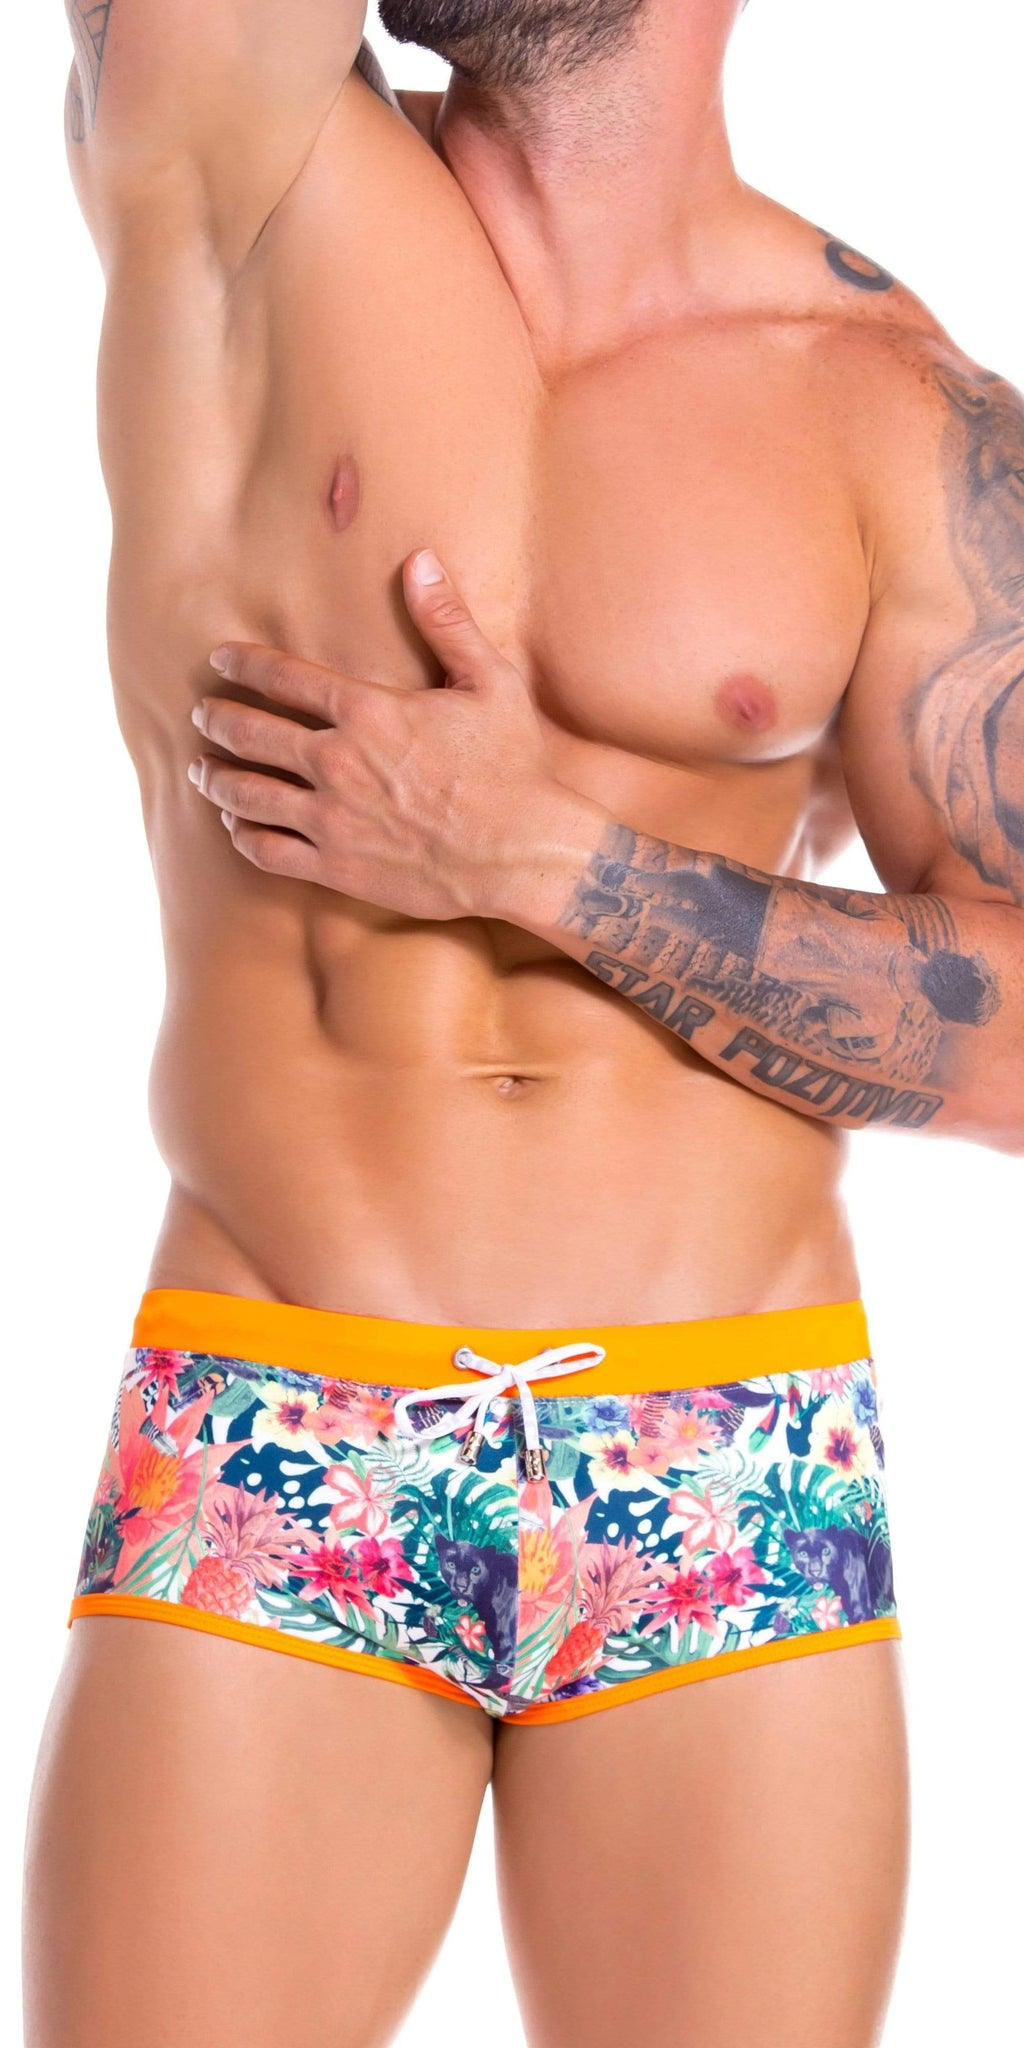 Jor 0899 Panther Swim Trunks Printed